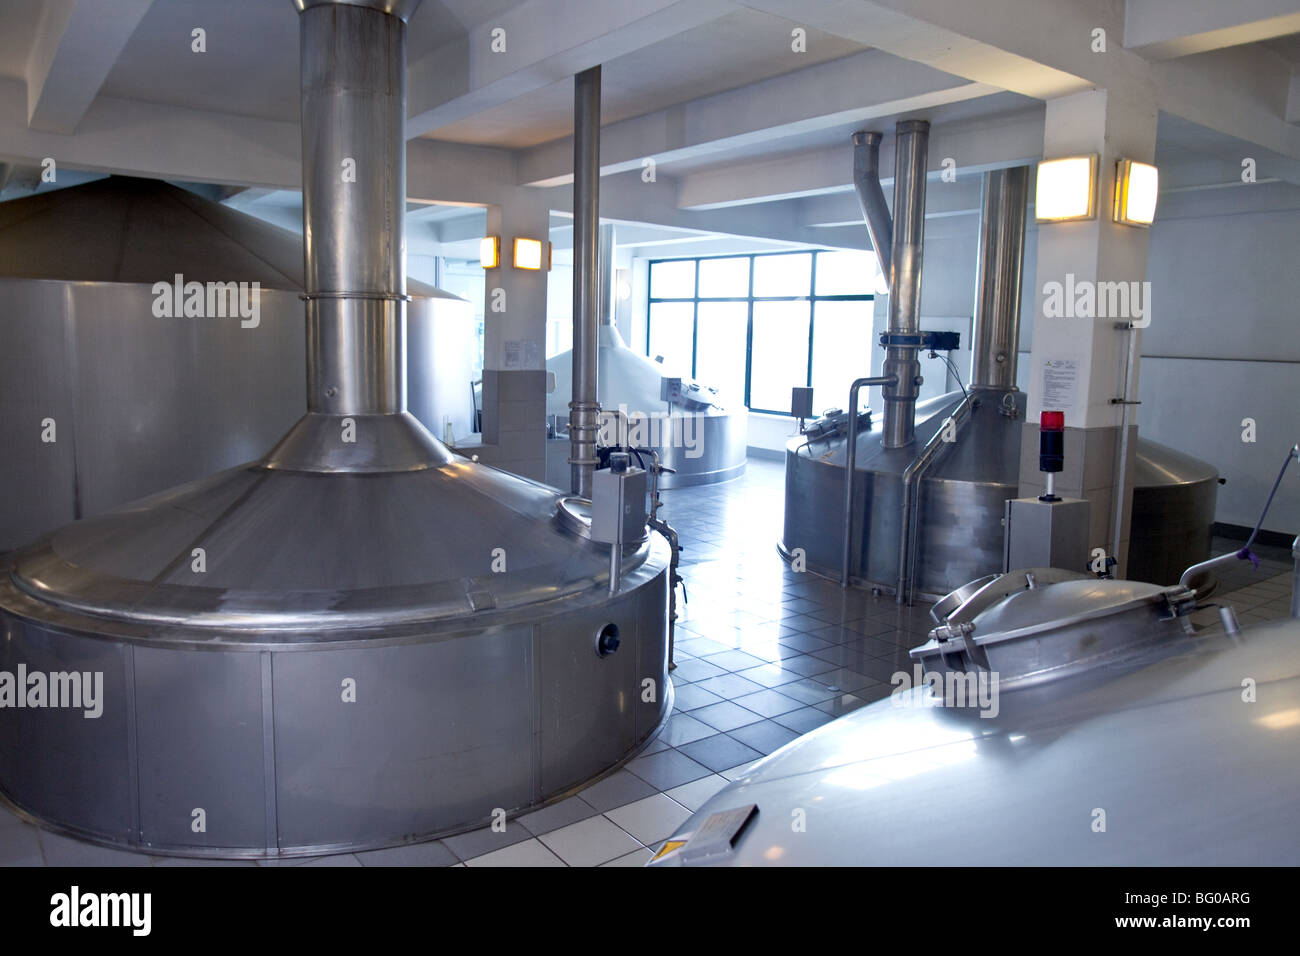 Modern Beer Brewing Kettle In A Brewery In Poland.